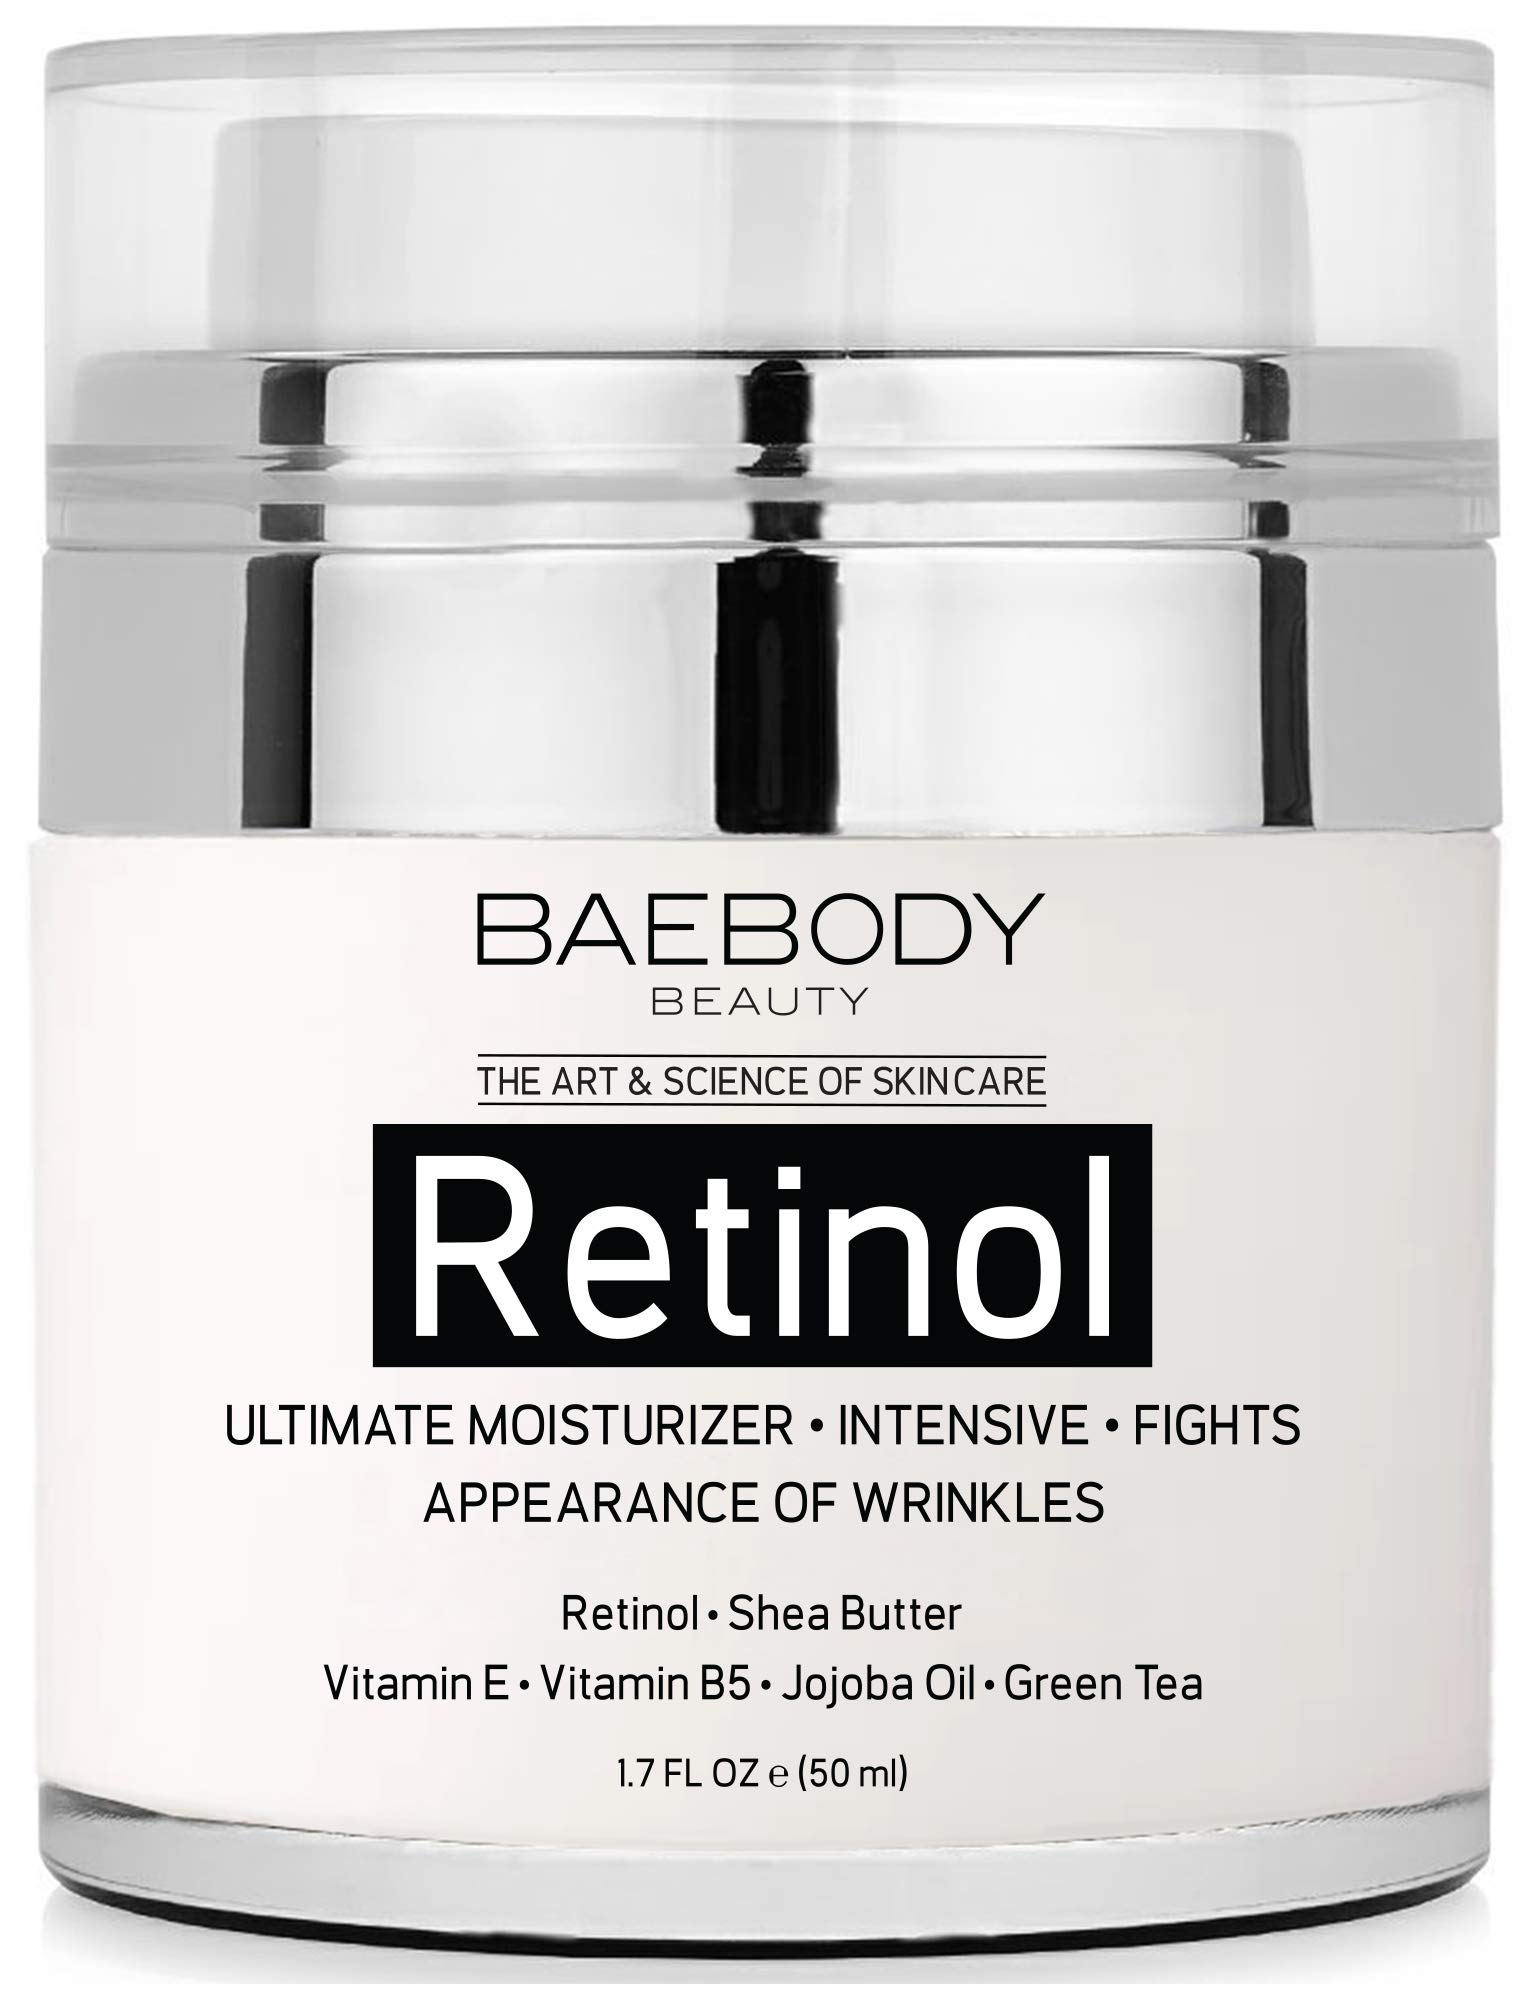 Baebody Retinol Moisturizer Cream for Face and Eye Area - With Retinol, Jojoba Oil, Vitamin E. Fights the Appearance of Wrinkles, Fine Lines. Best Day and Night Cream 1.7 Fl. Oz by Baebody